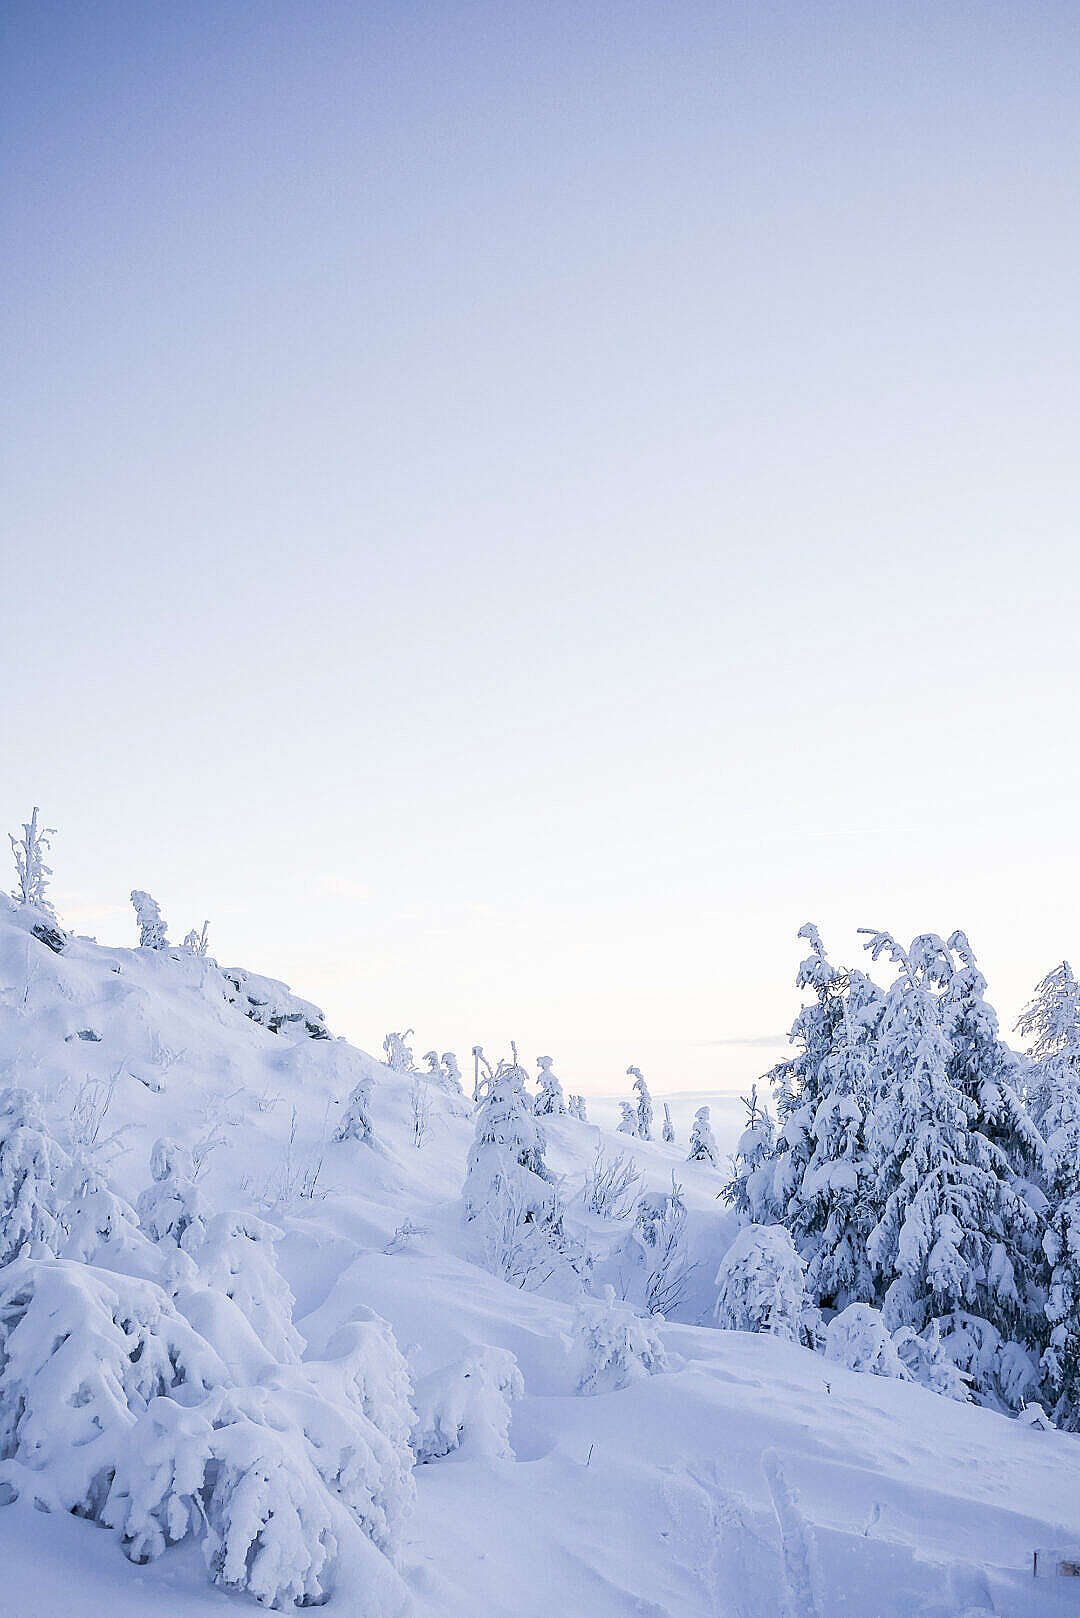 Download Snow Covered Landscape FREE Stock Photo